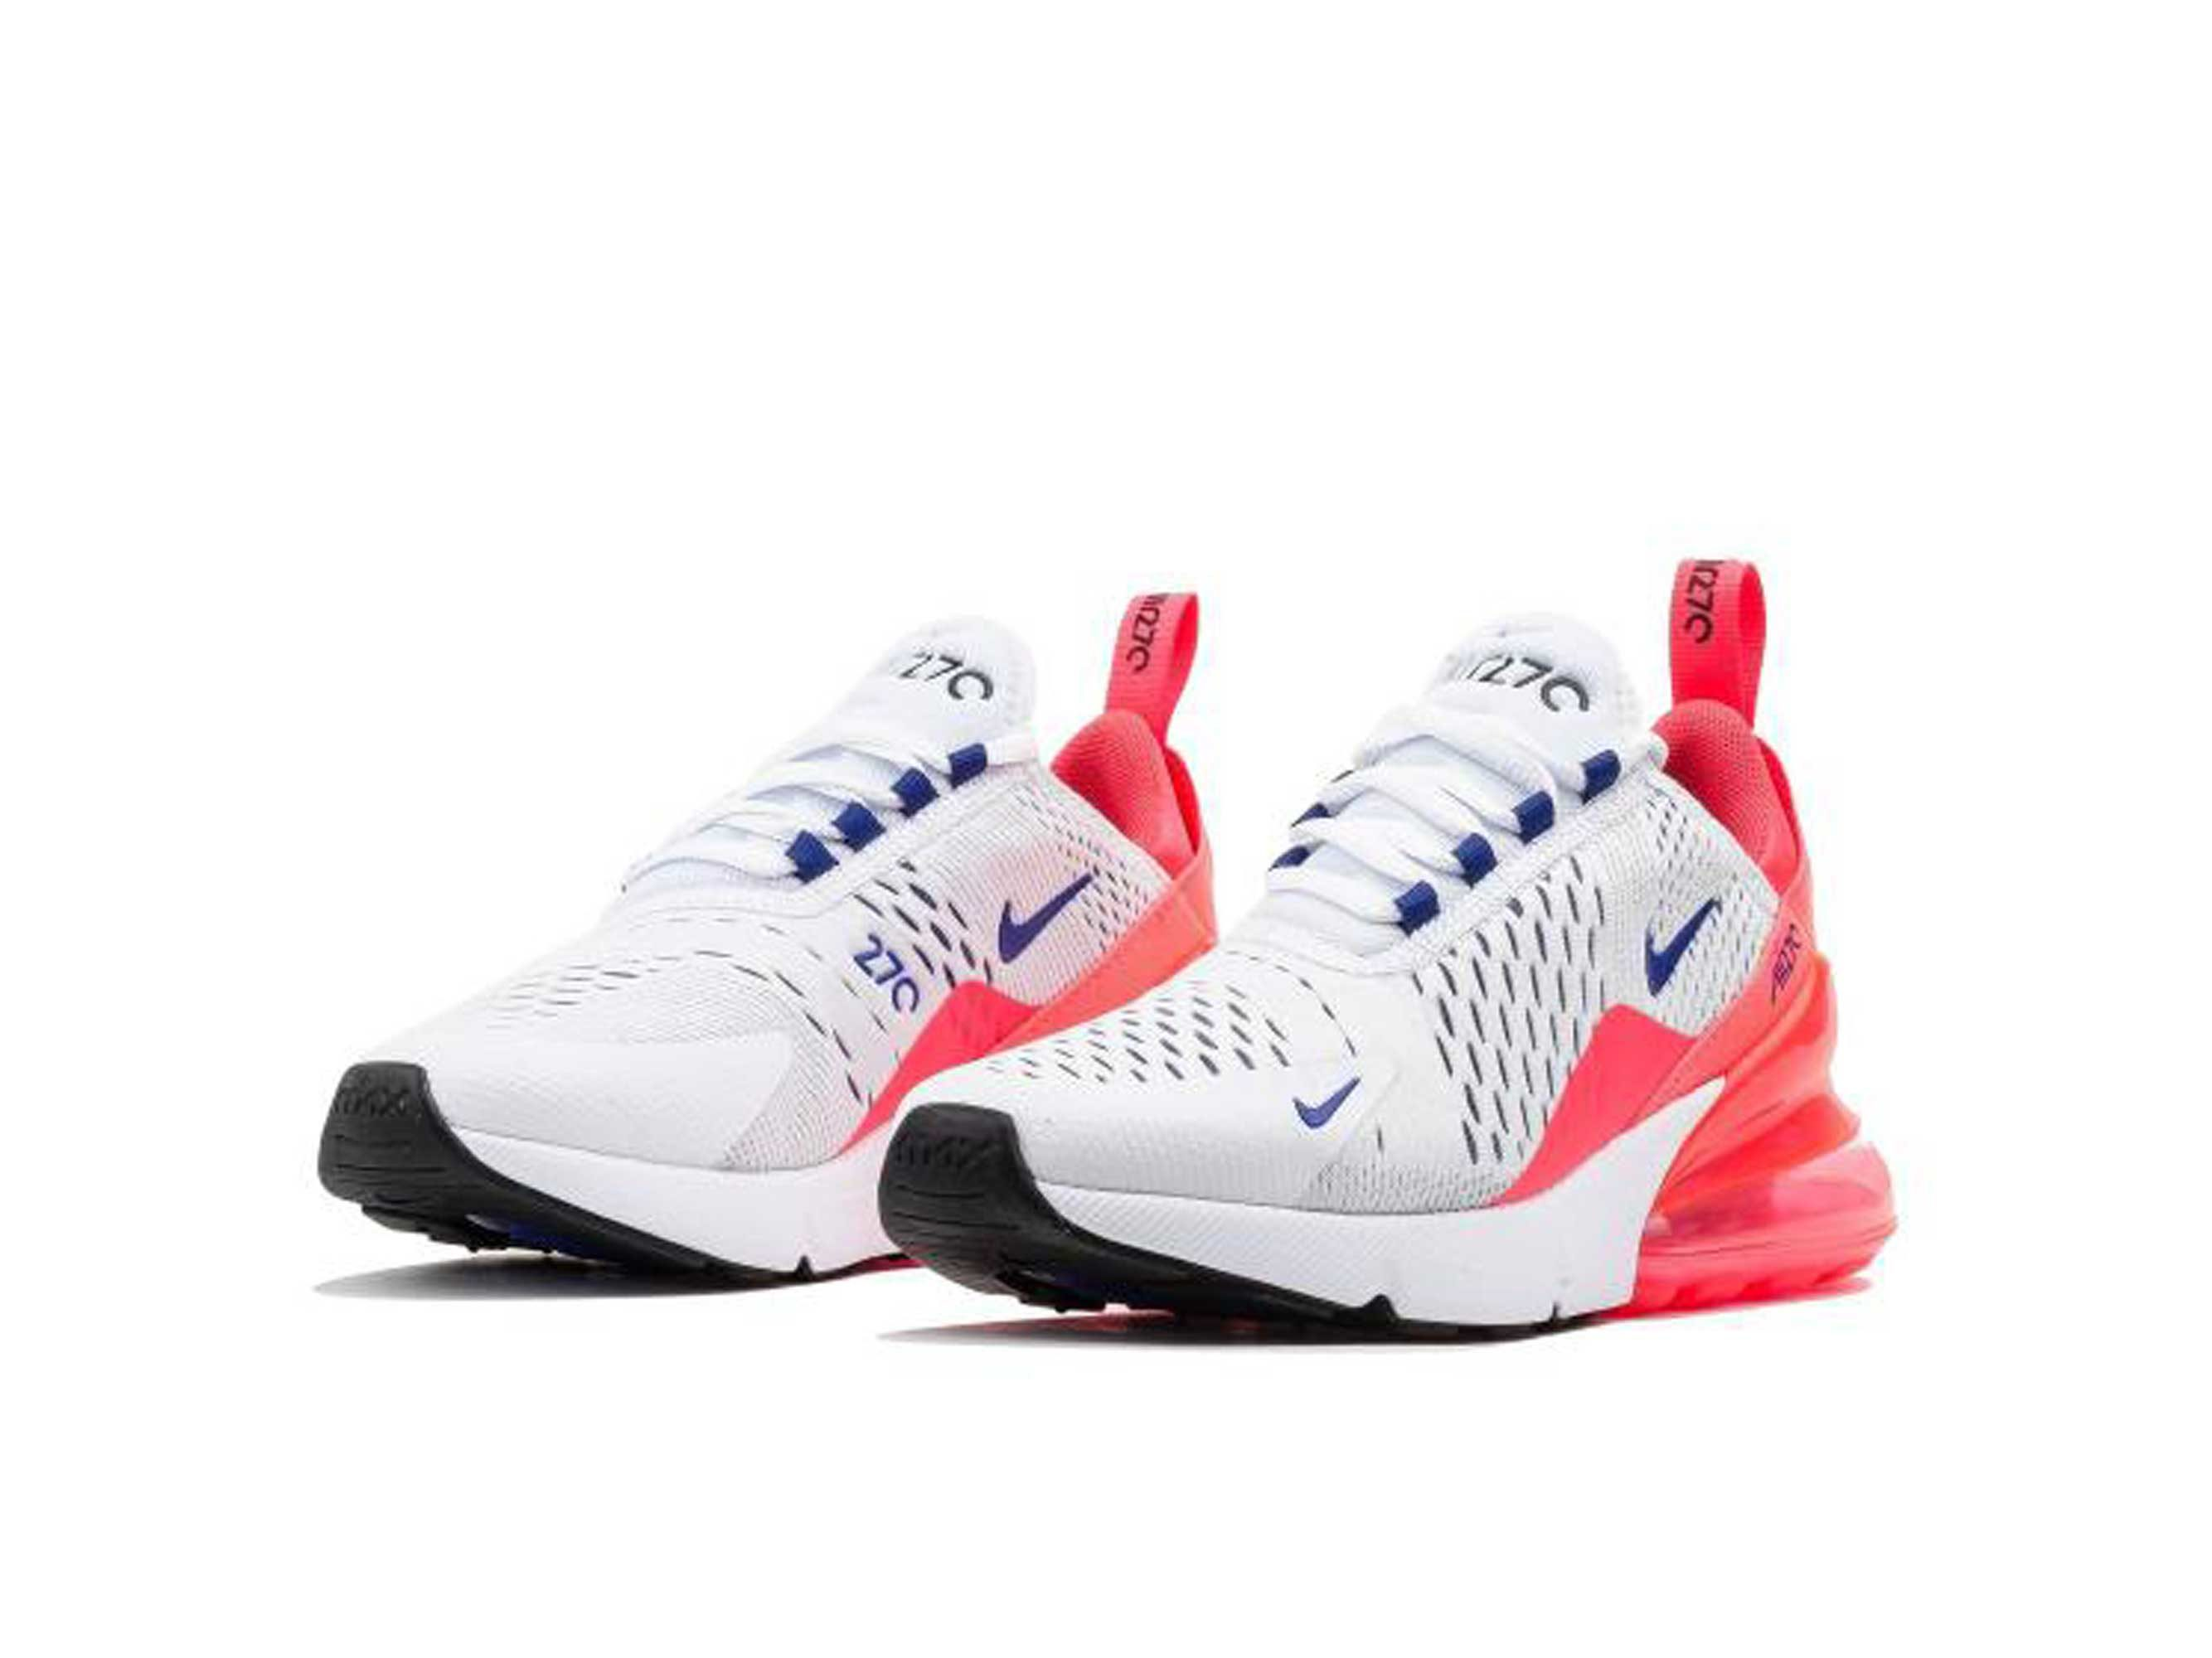 nike air max 270 white pink AH6789_101 купить